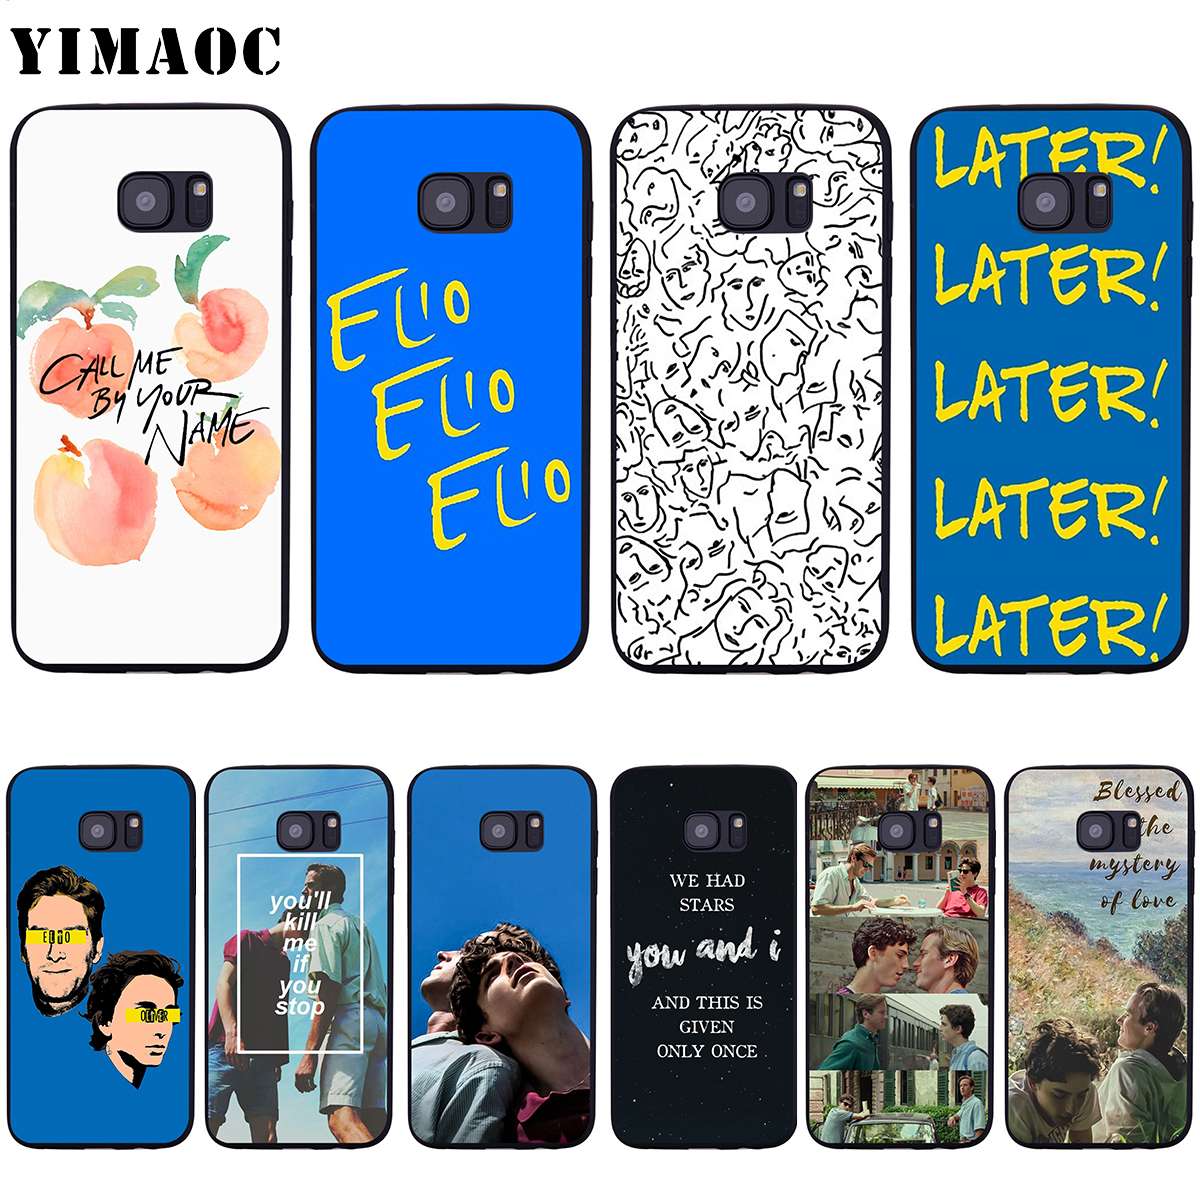 YIMAOC Call Me By Your Name Soft Silicone Case for Samsung Galaxy S6 S7 Edge S8 S9 Plus A3 A5 A6 Note 8 9